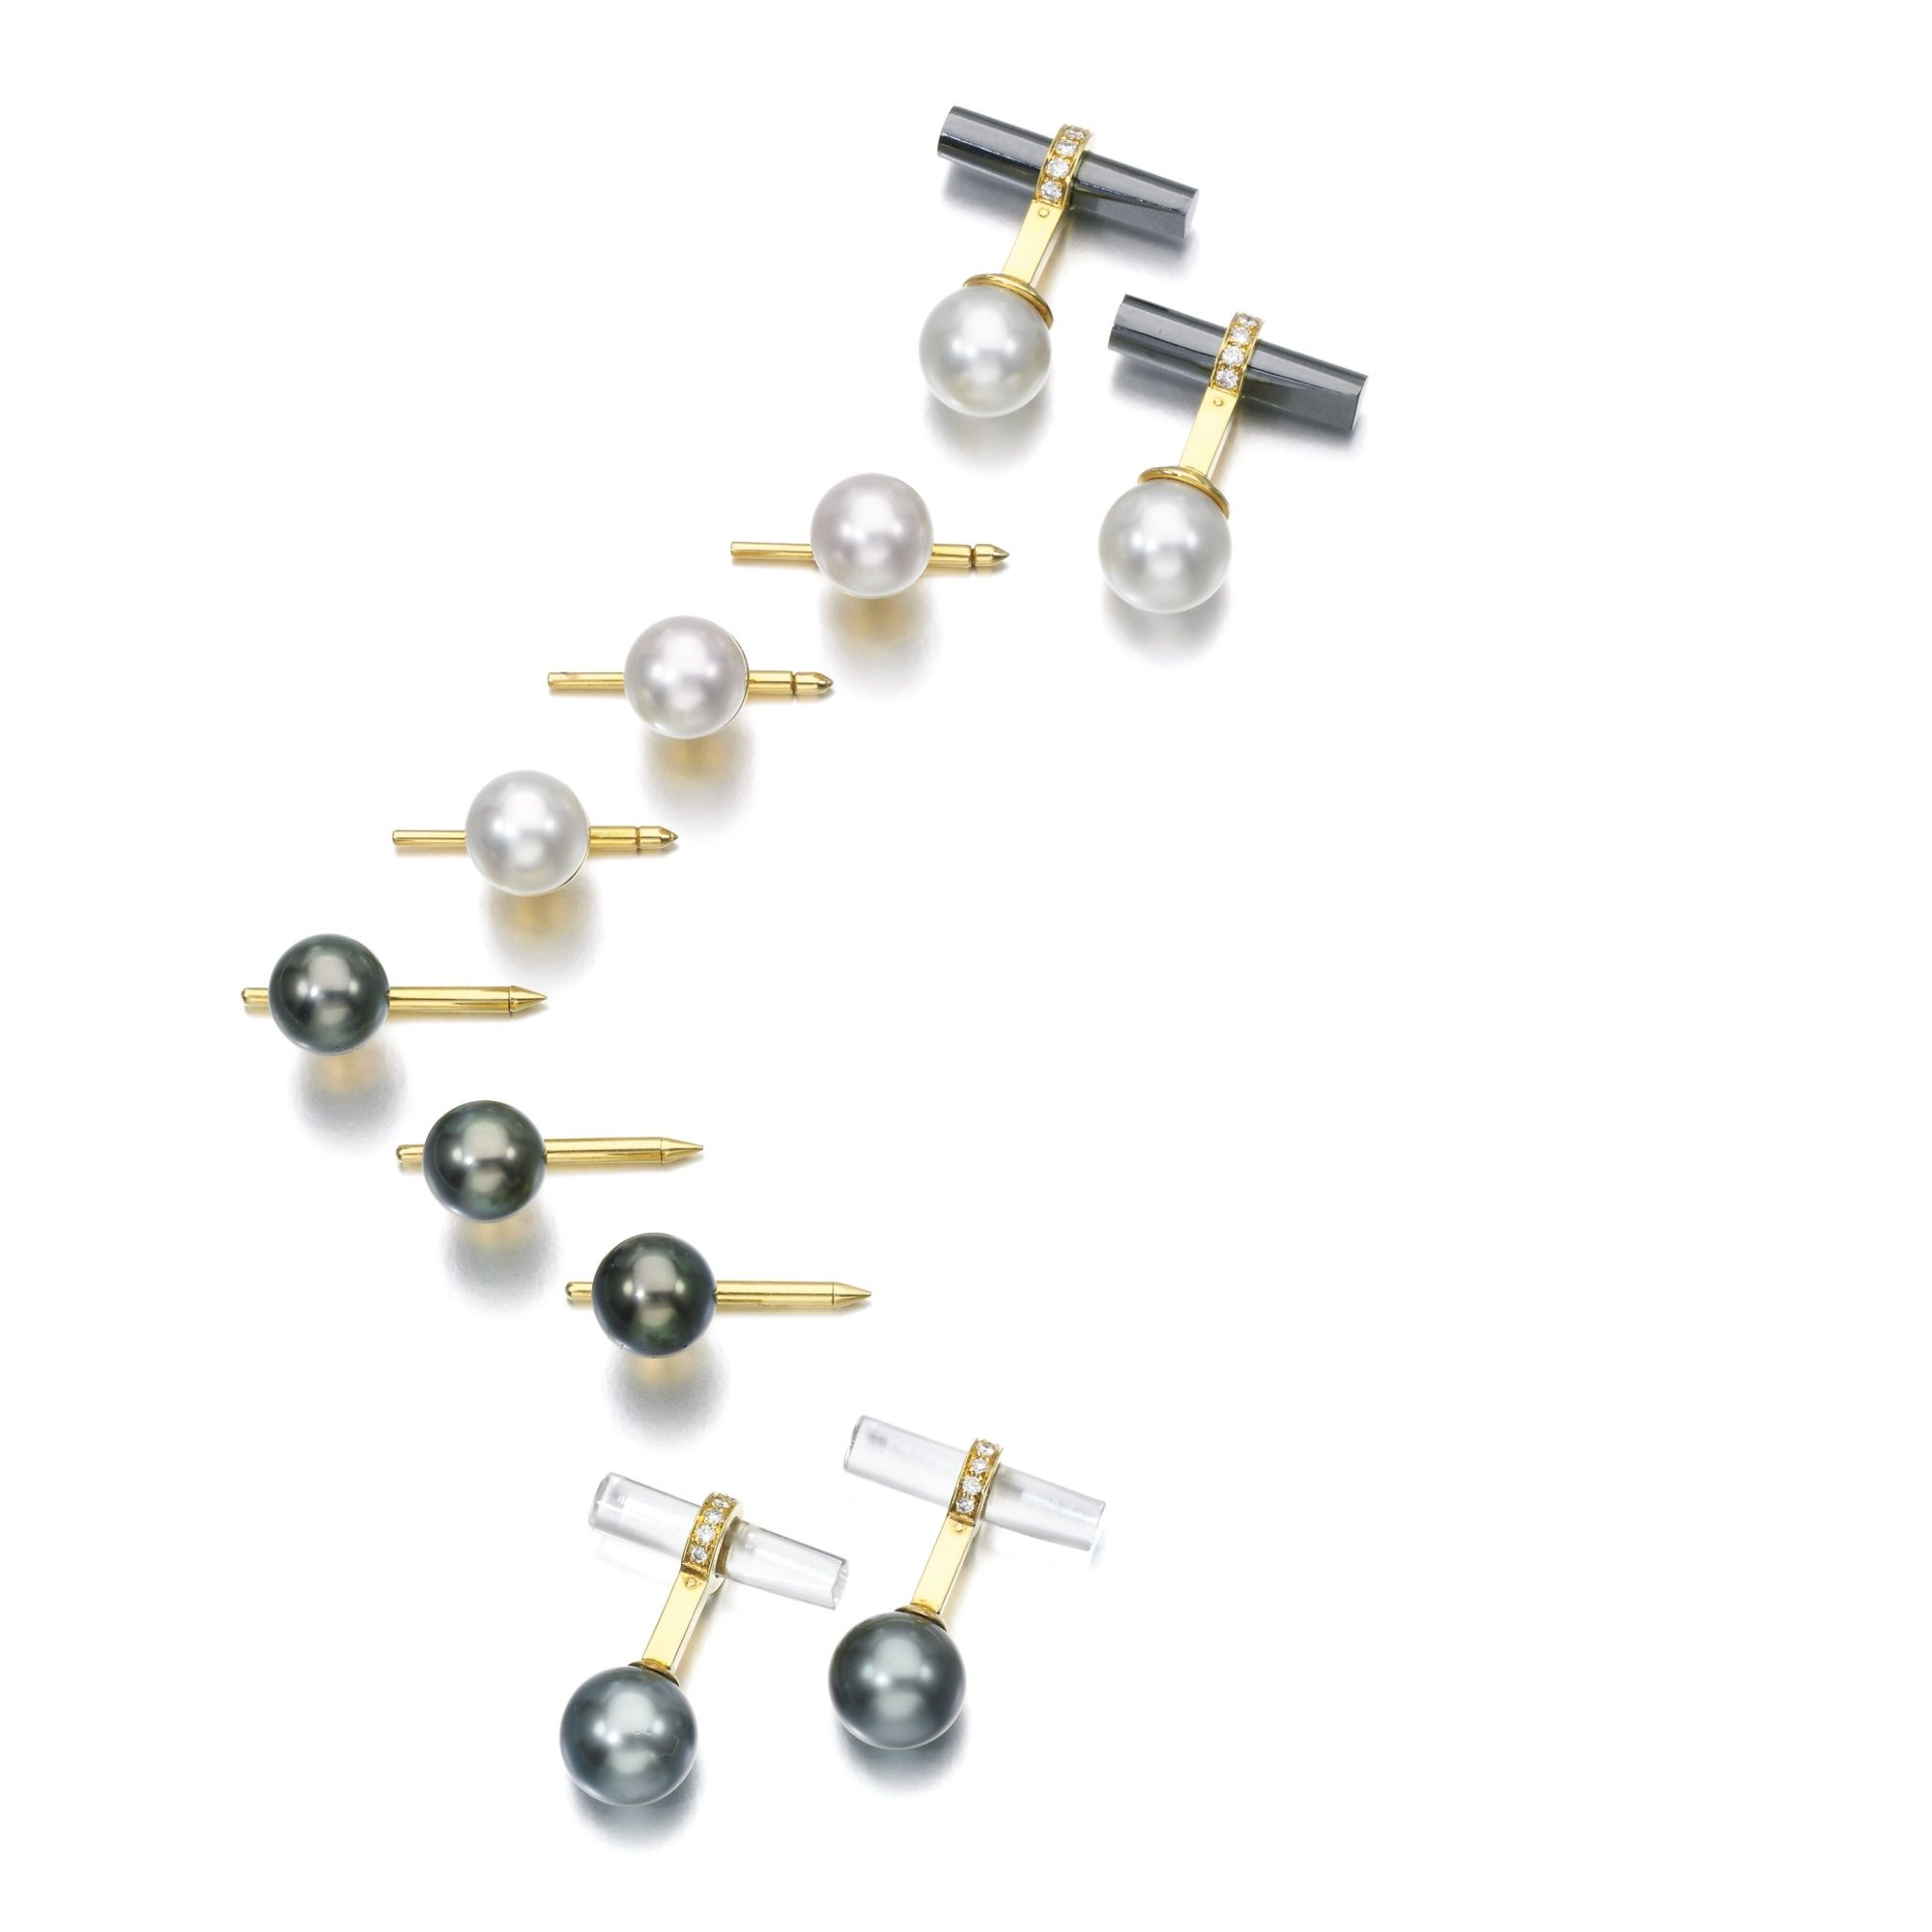 Collection of Gentleman's cultured pearl and diamond dress accessories | lot | Sotheby's